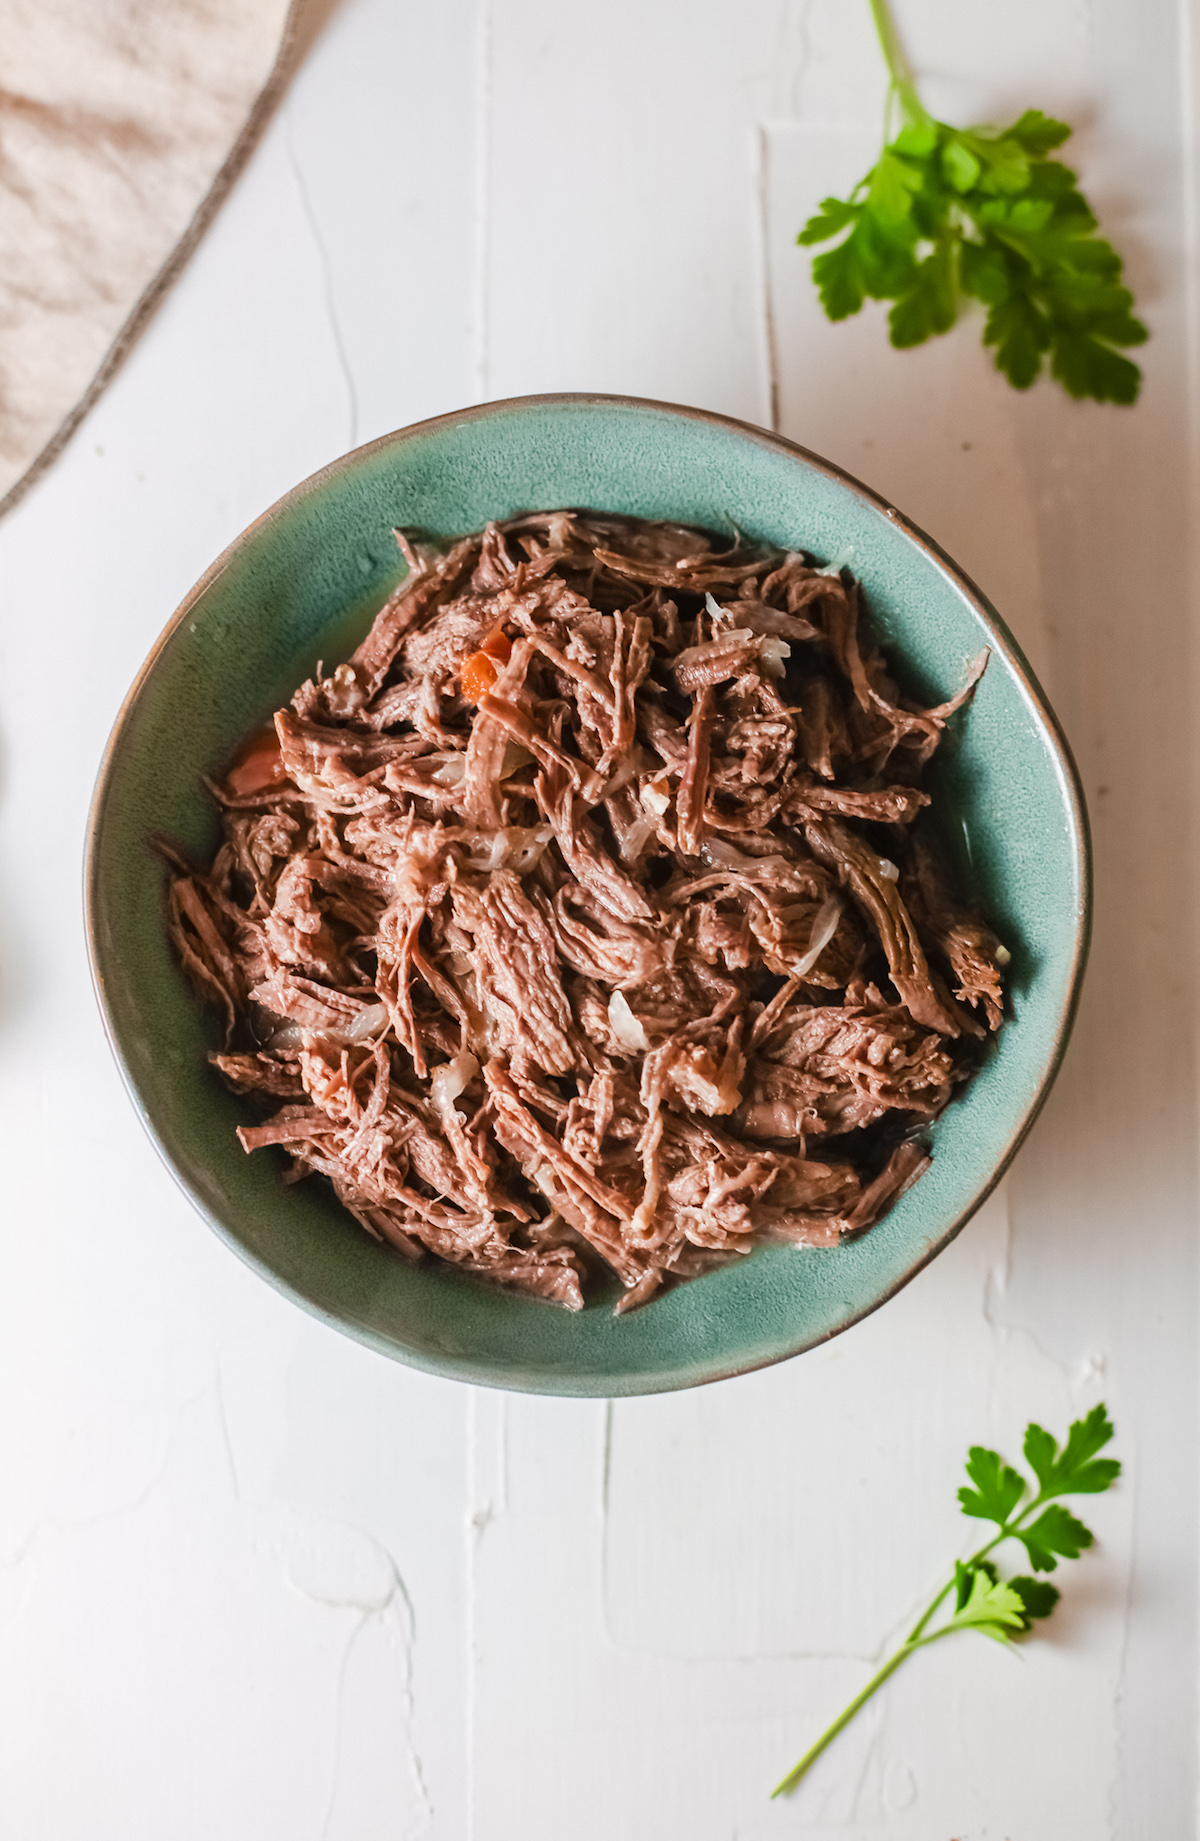 top down view of the finished Instant Pot Barbacoa served in a green ceramic bowl